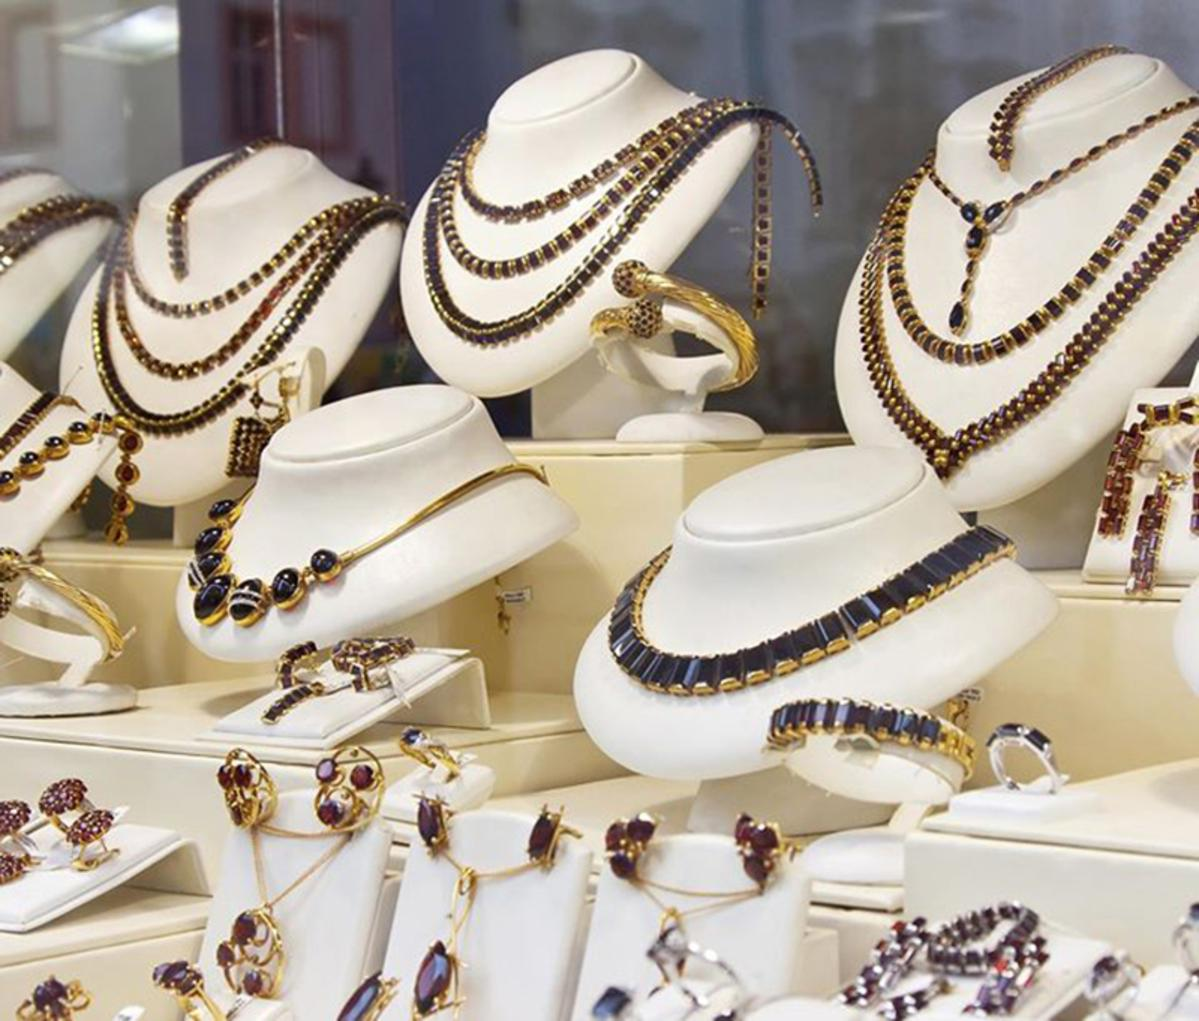 Come and check our big selection of jewelry